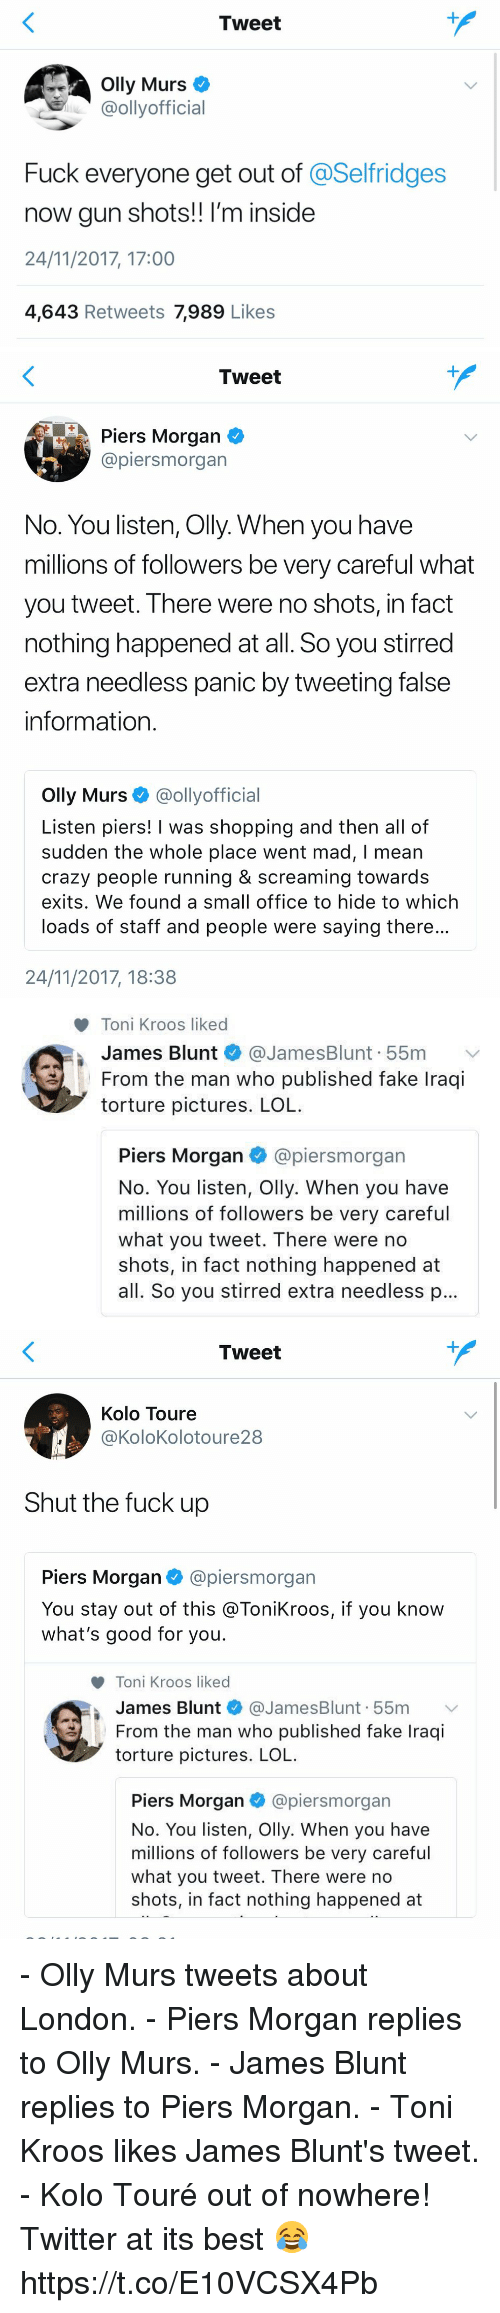 piers morgan: Tweet  Olly Murs  @ollyofficial  Fuck everyone get out of @Selfridges  now gun shots!! I'm inside  24/11/2017, 17:00  4,643 Retweets 7,989 Likes   Tweet  Piers Morgan  @piersmorgan  No. You listen, Olly. When you have  millions of followers be very careful what  you tweet. There were no shots, in fact  nothing happened at all. So you stirred  extra needless panic by tweeting false  information  Olly Murs @ollyofficial  Listen piers! I was shopping and then all of  sudden the whole place went mad, I mean  crazy people running & screaming towards  exits. We found a small office to hide to which  loads of staff and people were saying there  24/11/2017, 18:38   Toni Kroos liked  James Blunt * @JamesBlunt. 55m  From the man who published fake Iraqi  torture pictures. LOL  ﹀  I  Piers Morgan @piersmorgan  No. You listen, Olly. When you have  millions of followers be very careful  what you tweet. There were no  shots, in fact nothing happened at  all. So you stirred extra needless p   Tweet  Kolo Toure  @KoloKolotoure28  Shut the fuck up  Piers Morgan@piersmorgan  You stay out of this @ToniKroos, if you know  what's good for you.  Toni Kroos liked  James Blunt * @JamesBlunt. 55m 、  From the man who published fake Iraqi  torture pictures. LOL  Piers Morgan@piersmorgan  No. You listen, Olly. When you have  millions of followers be very careful  what you tweet. There were no  shots, in fact nothing happened at - Olly Murs tweets about London. - Piers Morgan replies to Olly Murs. - James Blunt replies to Piers Morgan. - Toni Kroos likes James Blunt's tweet. - Kolo Touré out of nowhere!  Twitter at its best 😂 https://t.co/E10VCSX4Pb